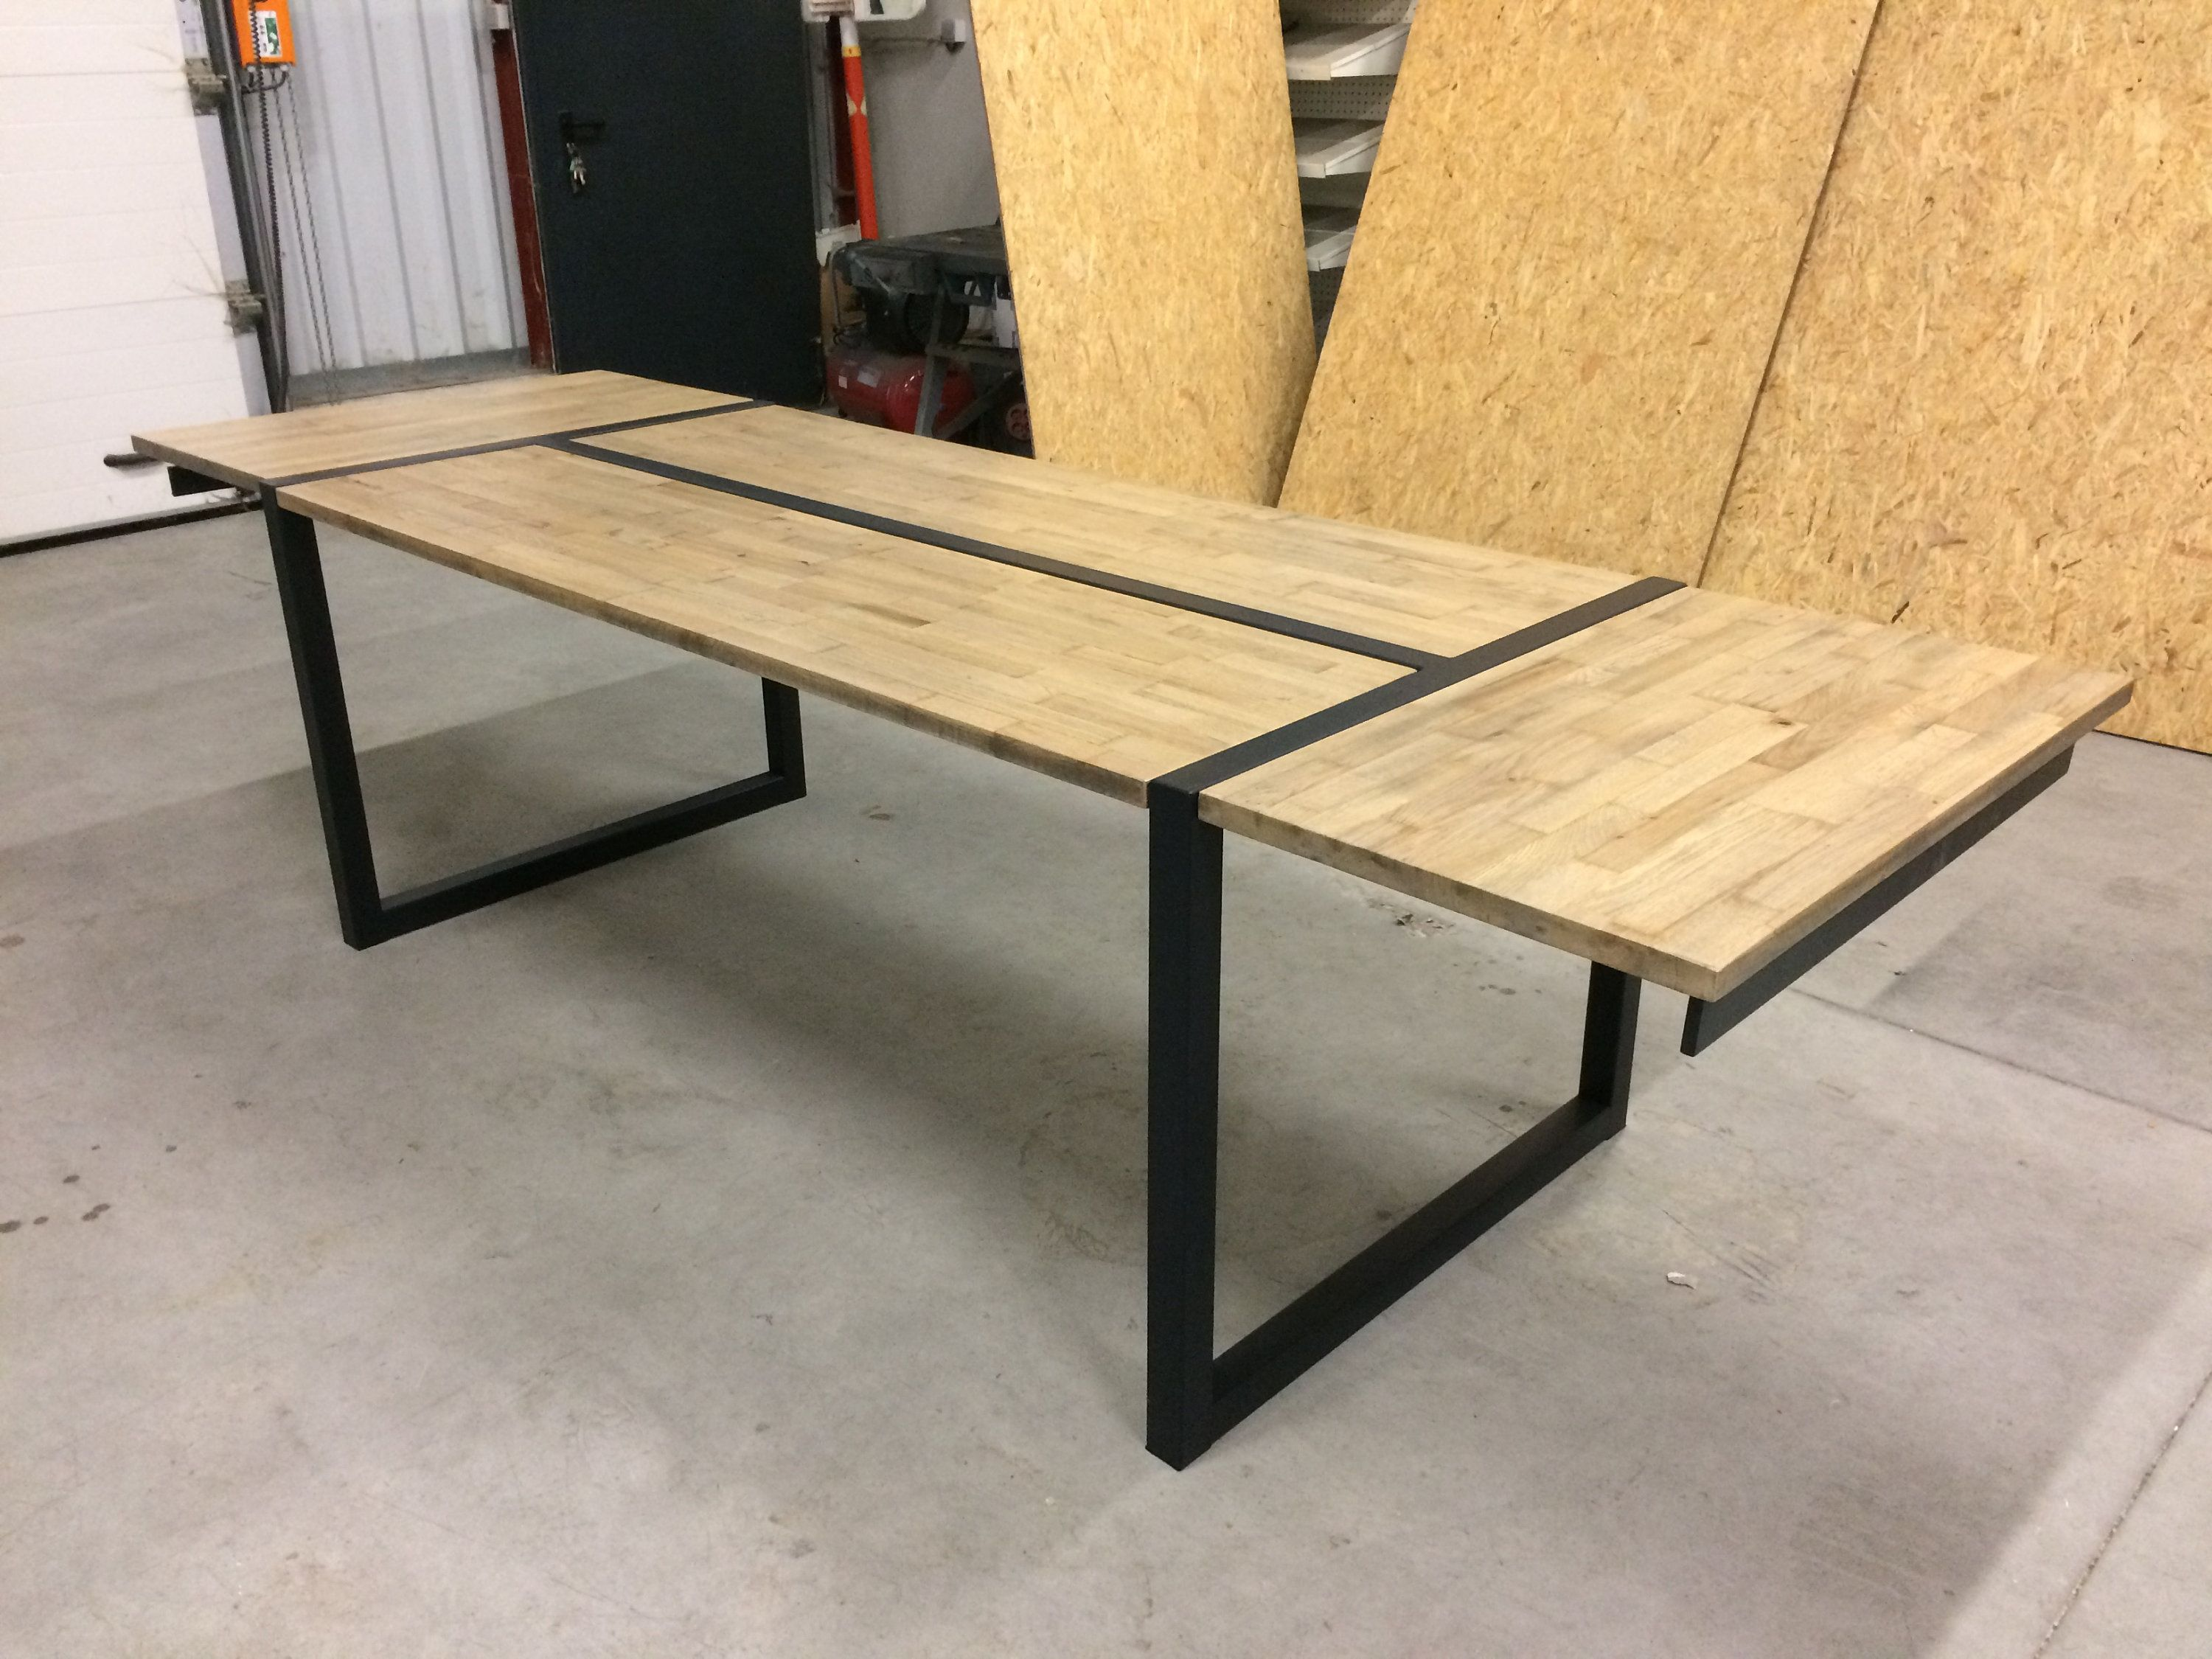 Metal Table And Solid Oak With Extension Cords Home Decor Furniture Decor